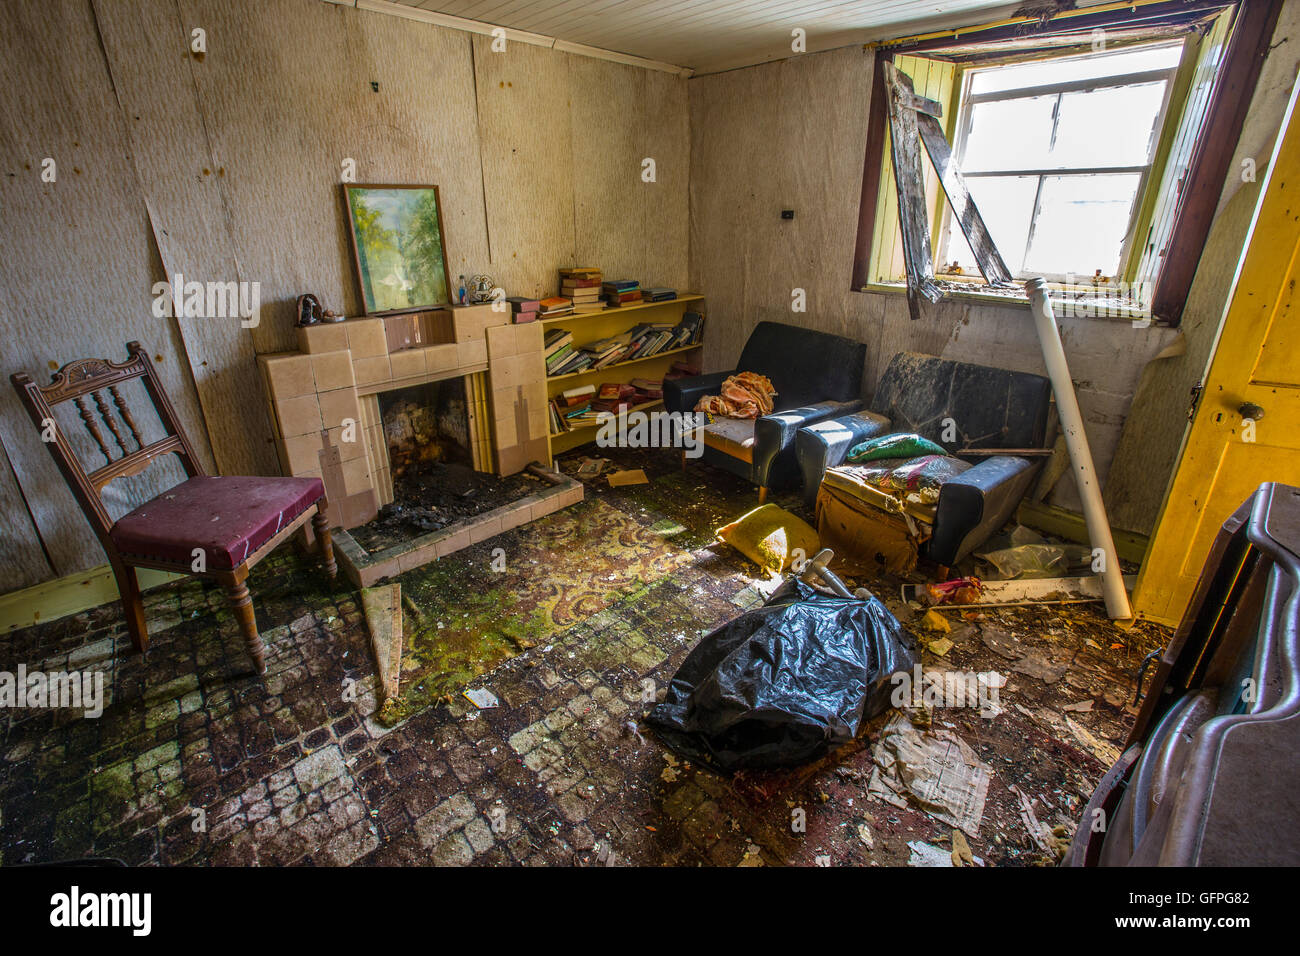 The living room of a derelict cottage. - Stock Image